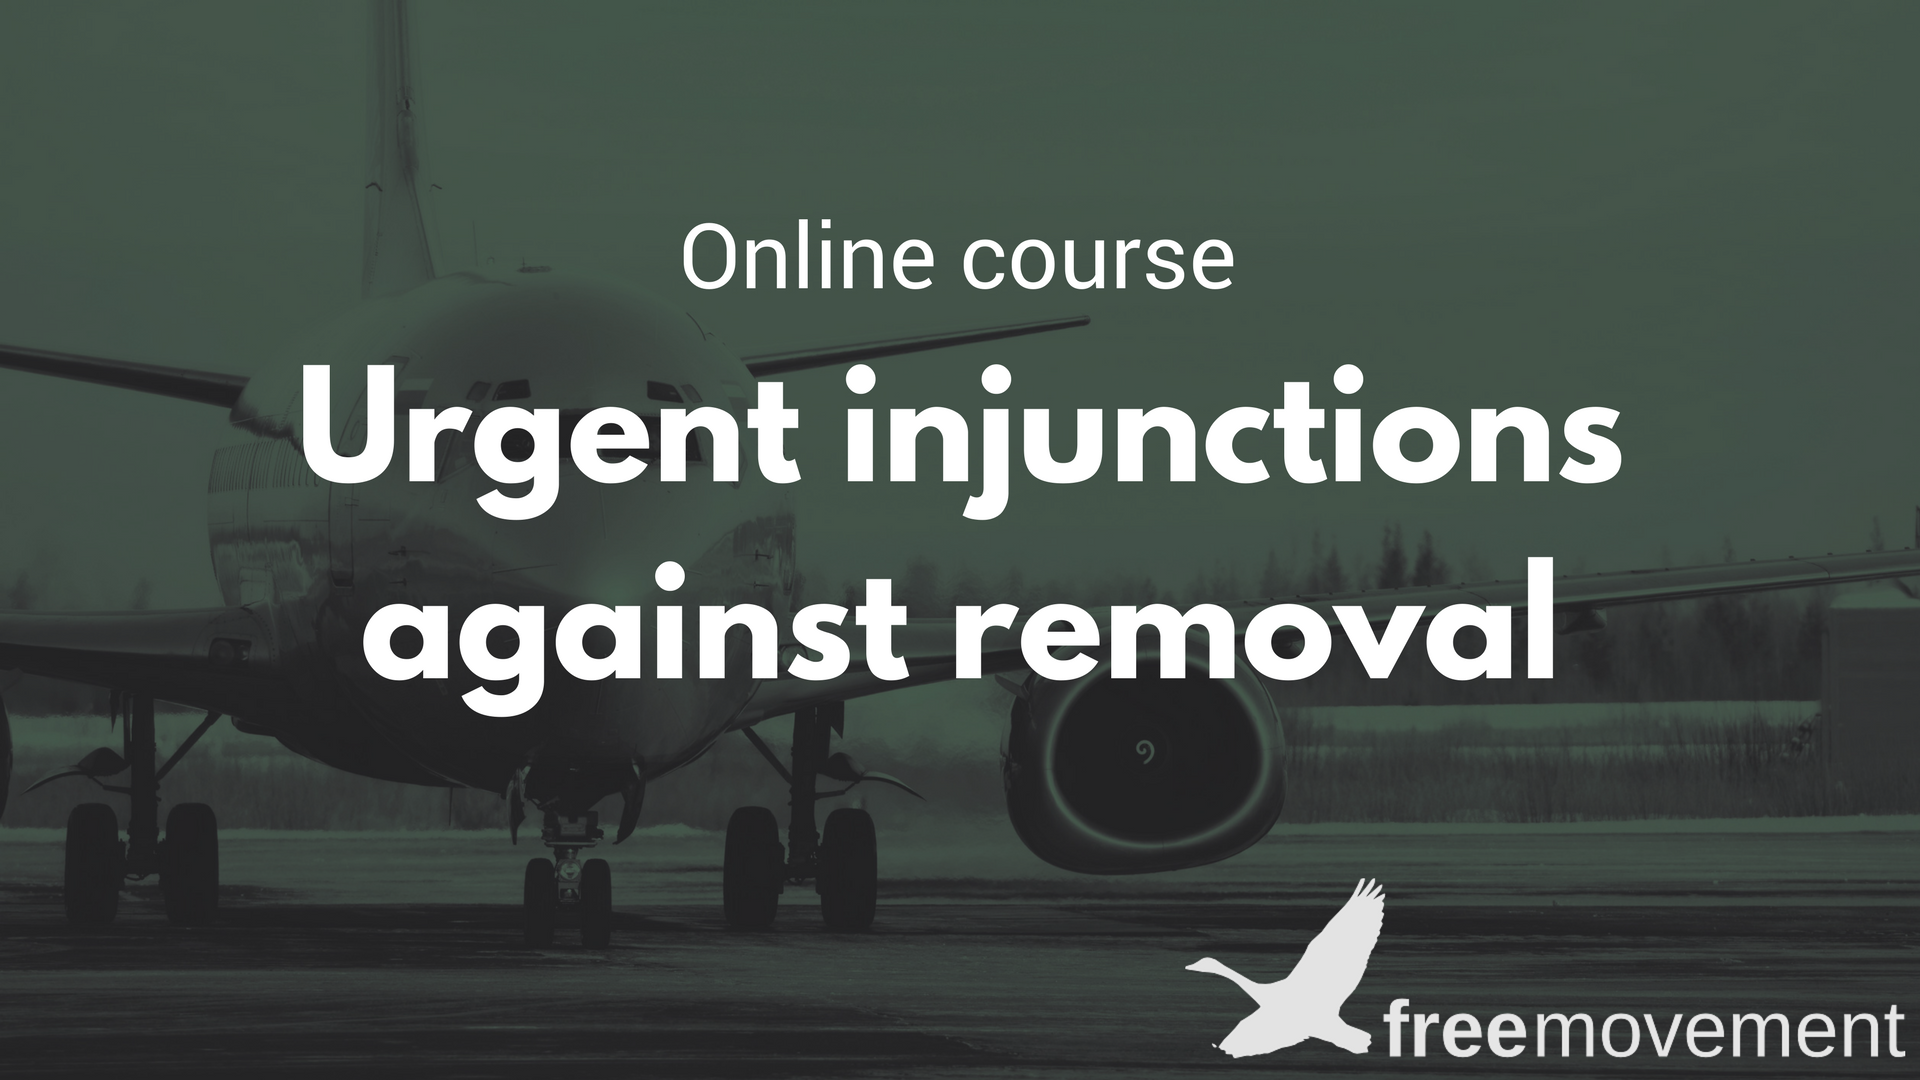 Urgent injunctions course